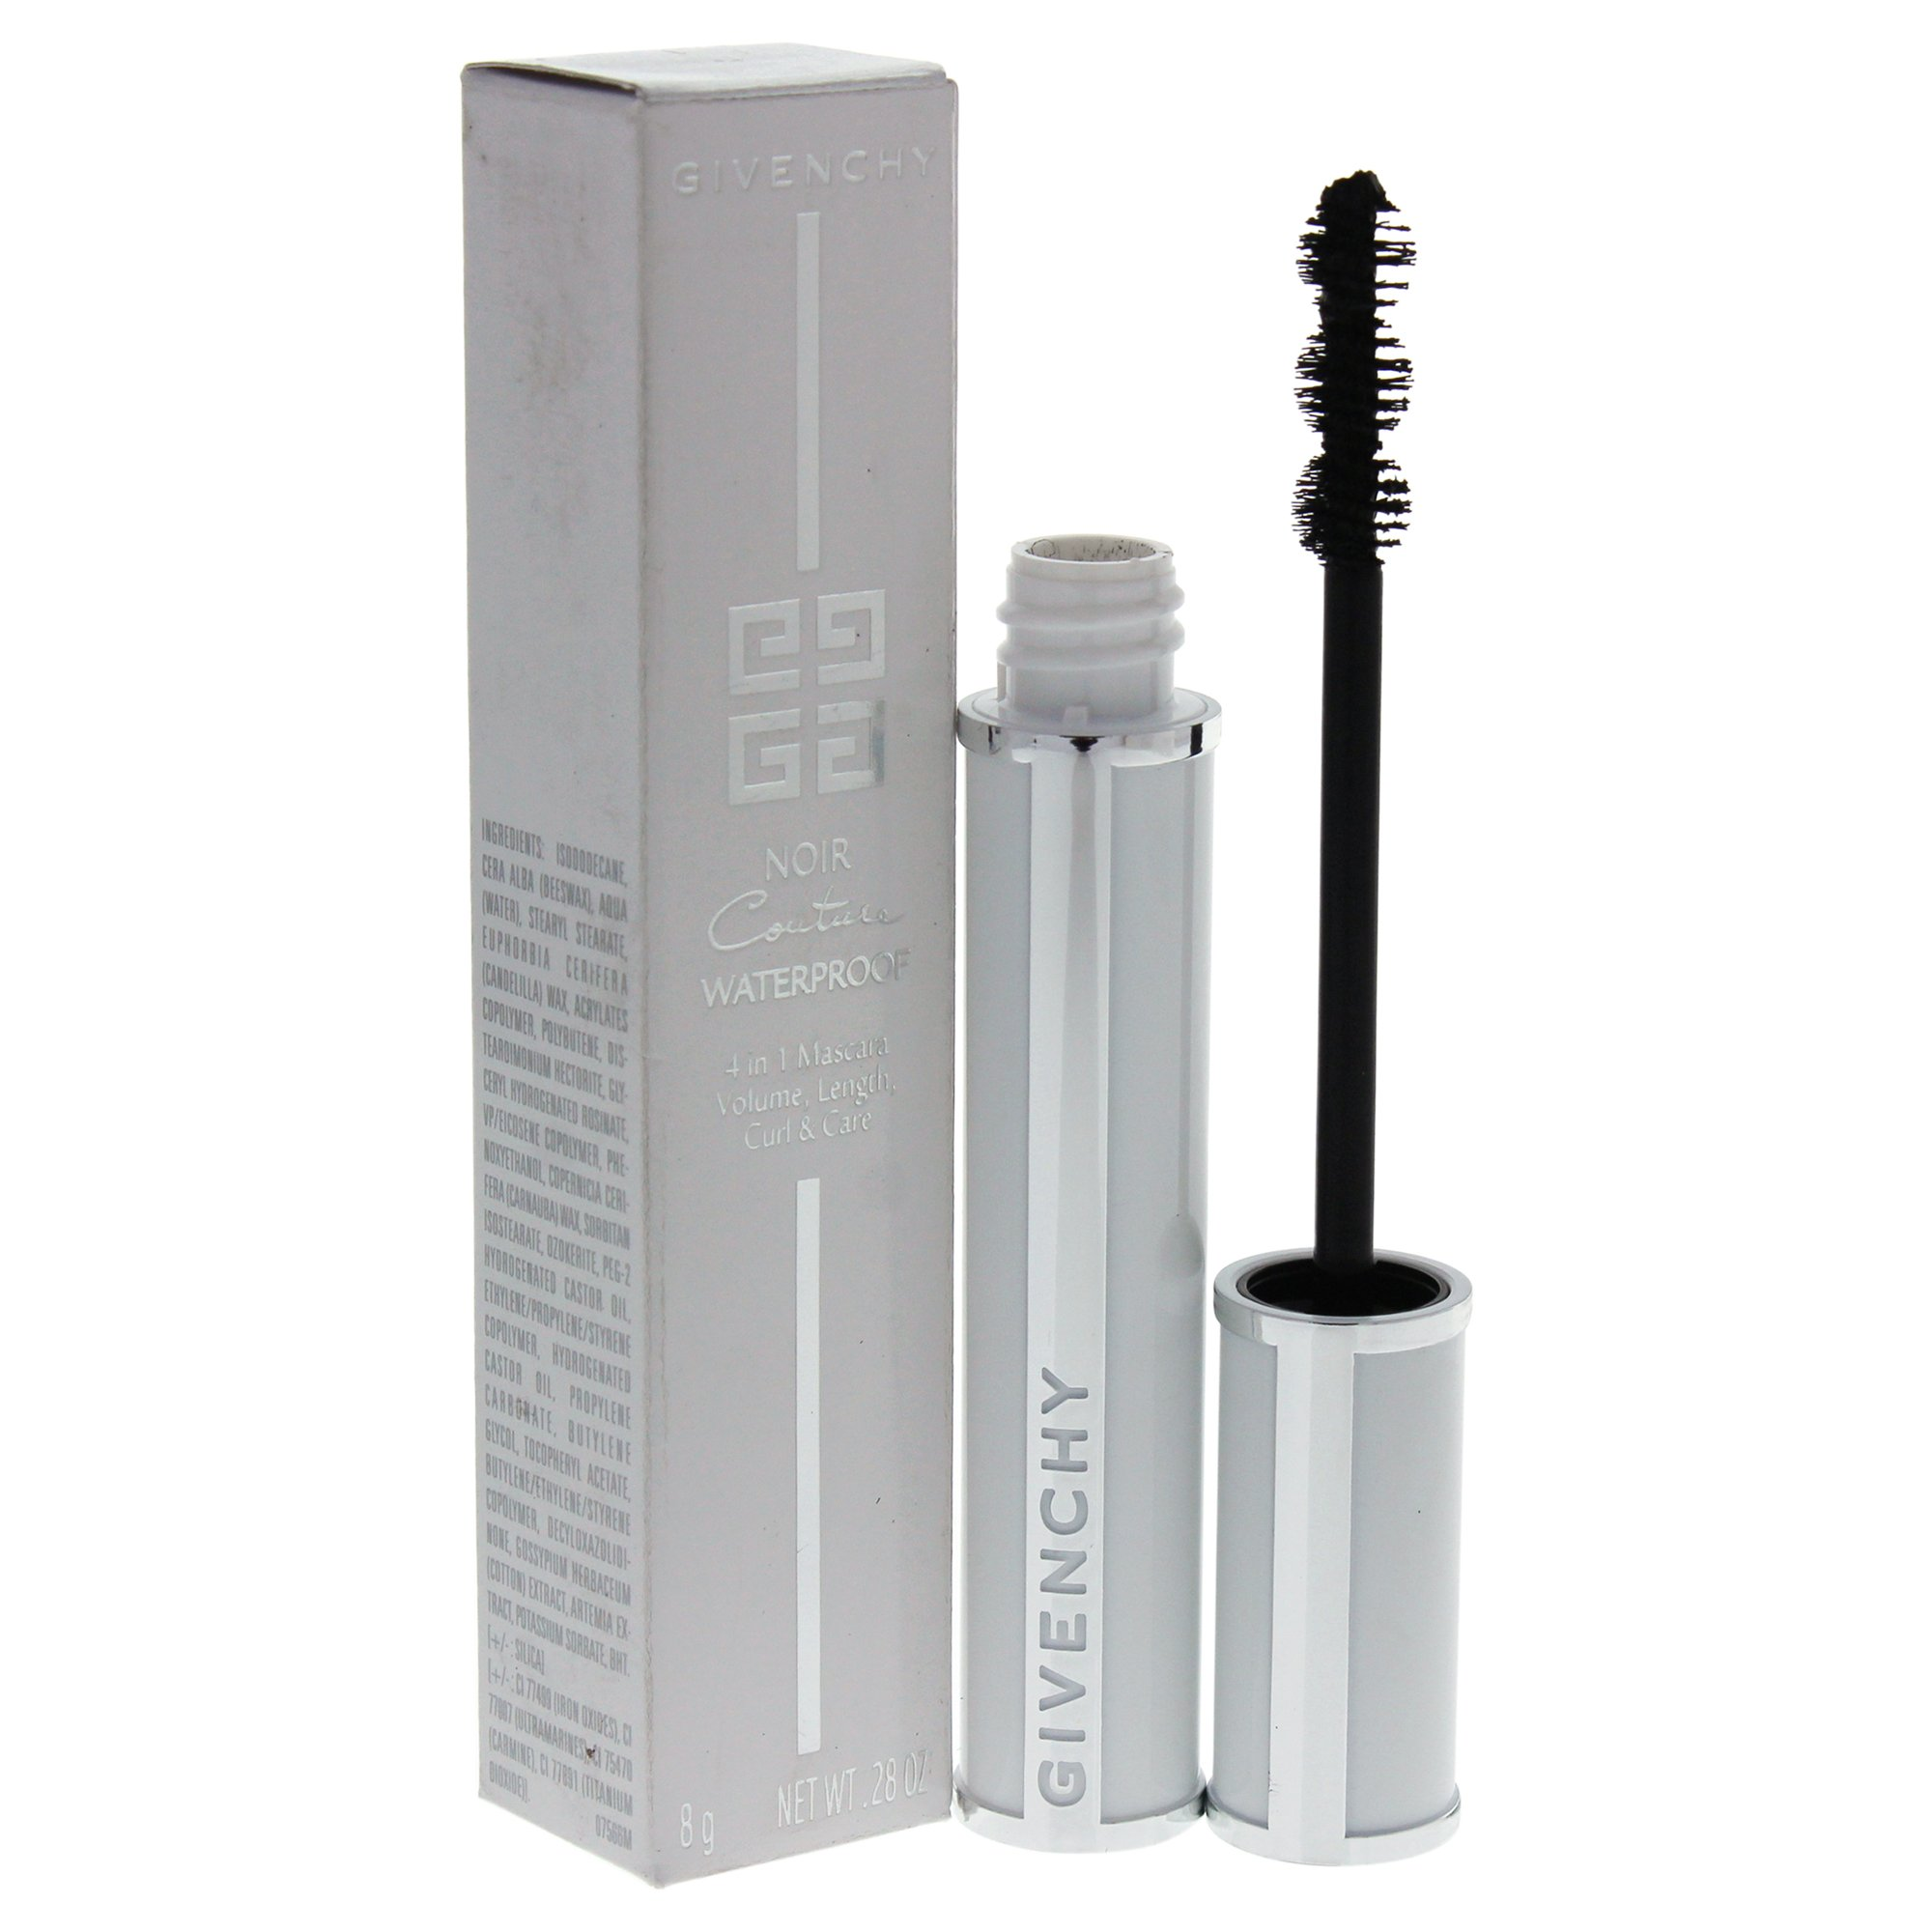 Givenchy Noir Couture Waterproof 4-in-1 Mascara, Black Velvet, 0.28 Ounce by Givenchy